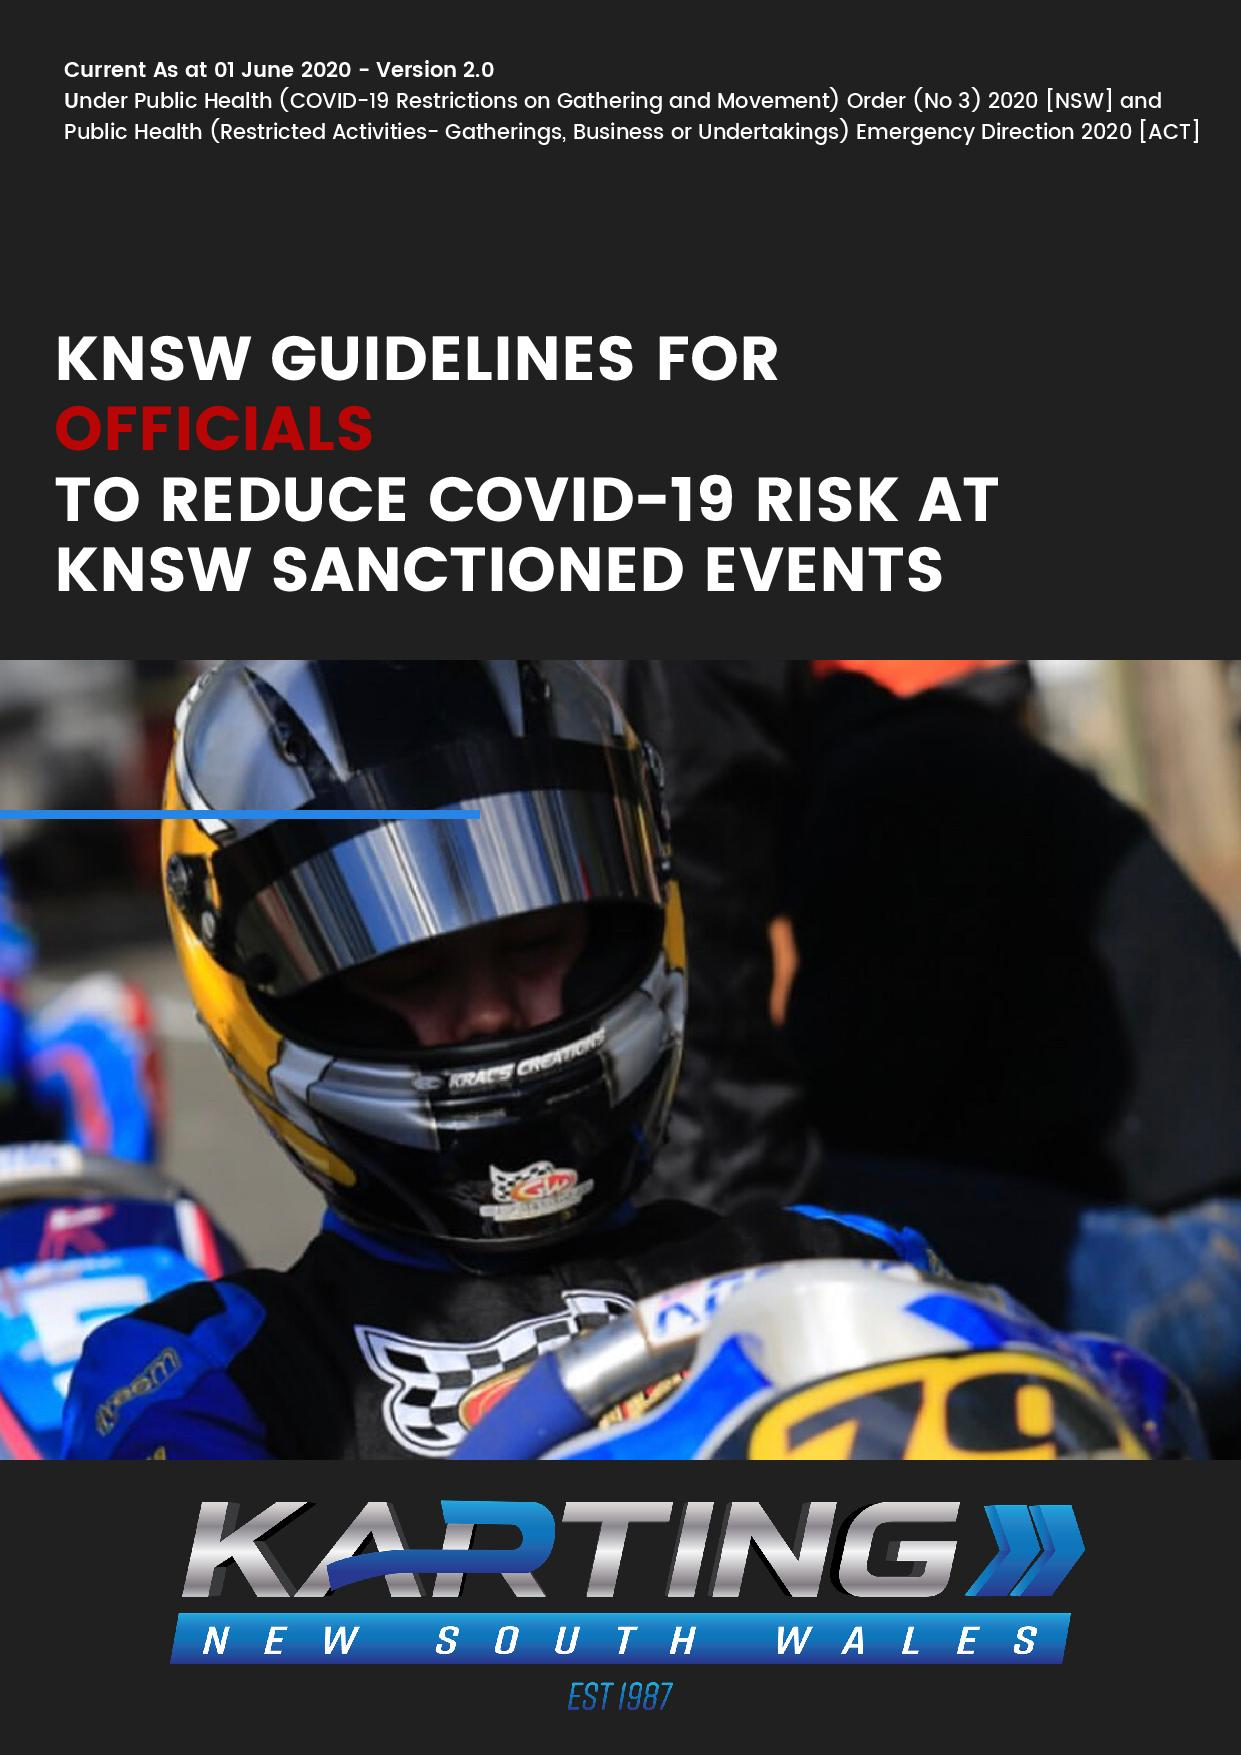 Karting New South Wales COVID-19 Guidelines for Officials